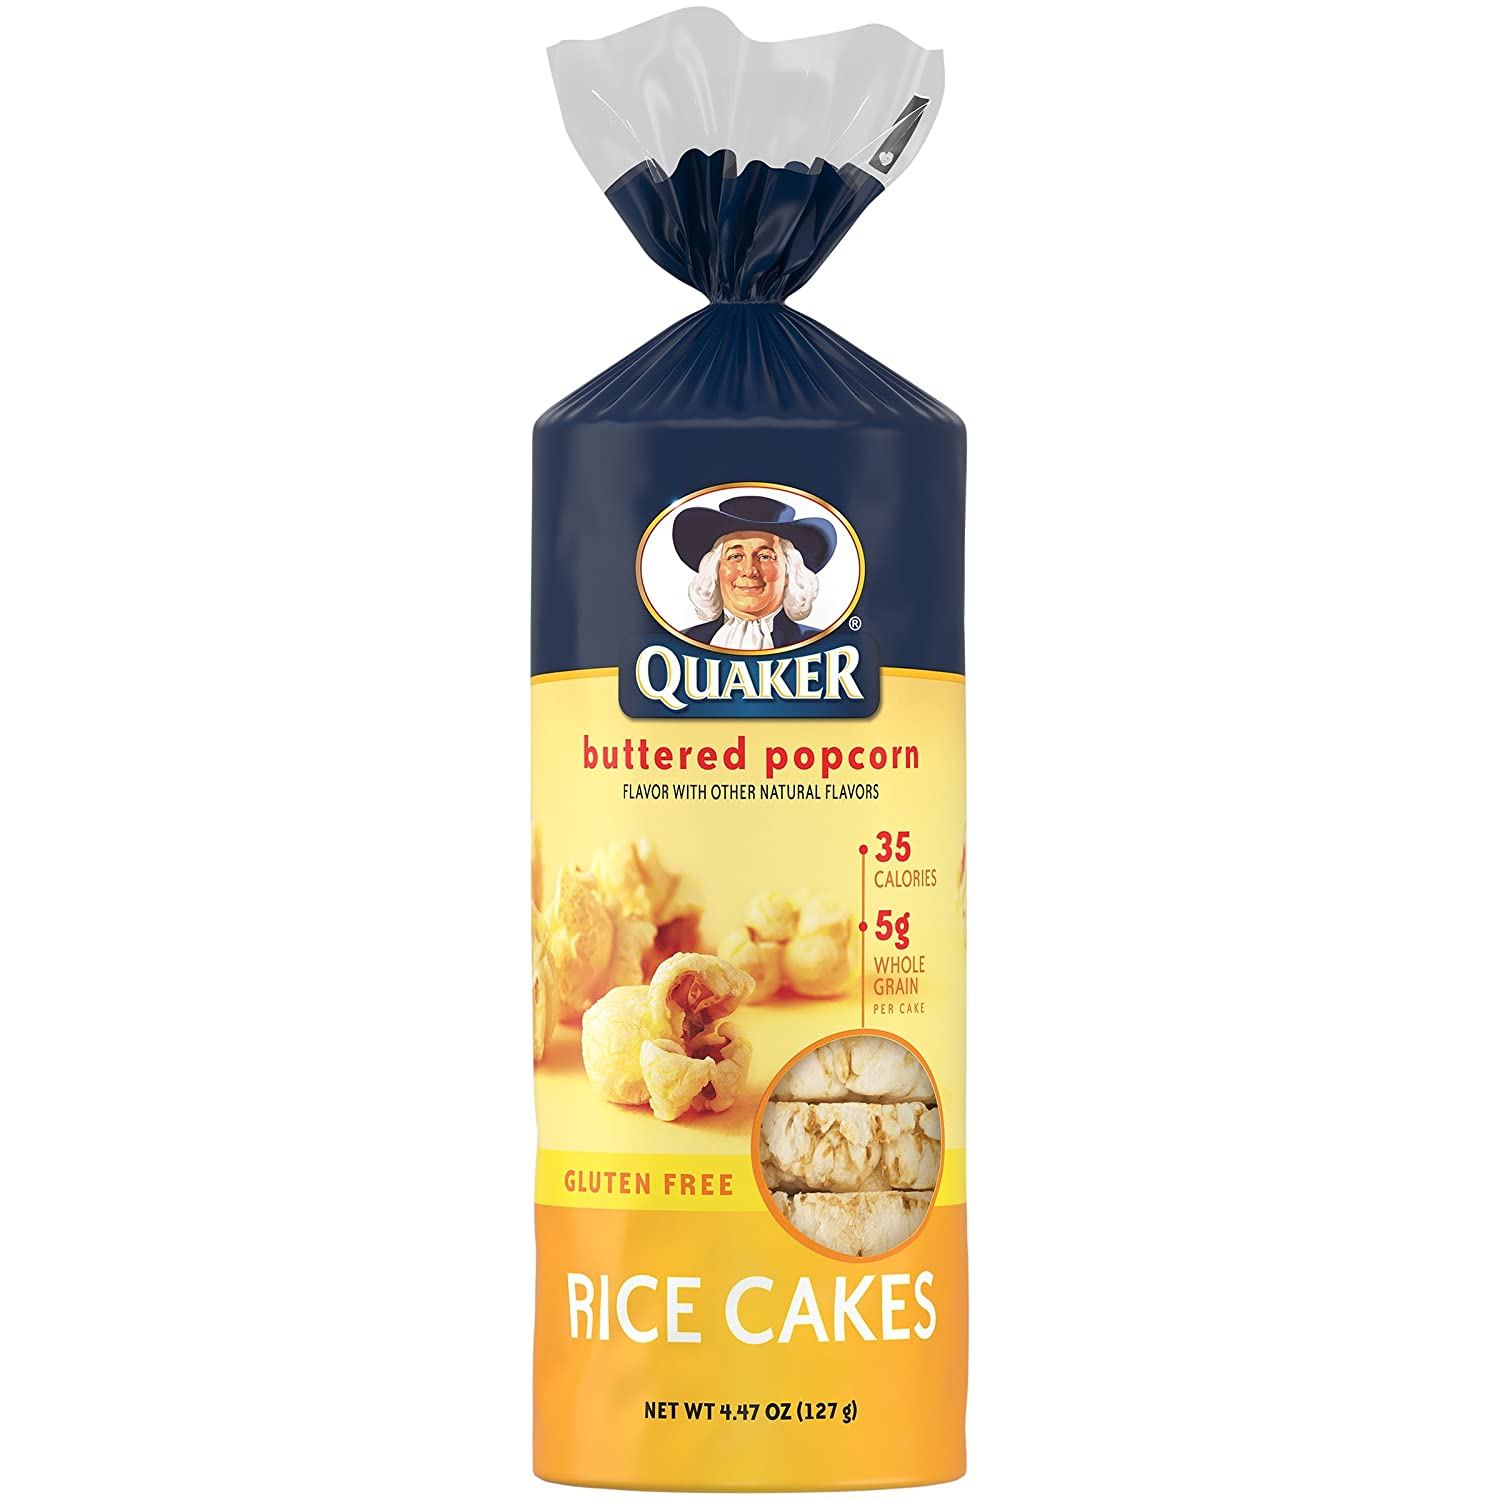 Quaker Buttered Popcorn Rice Cakes, 4.47 Oz, Pack of 4